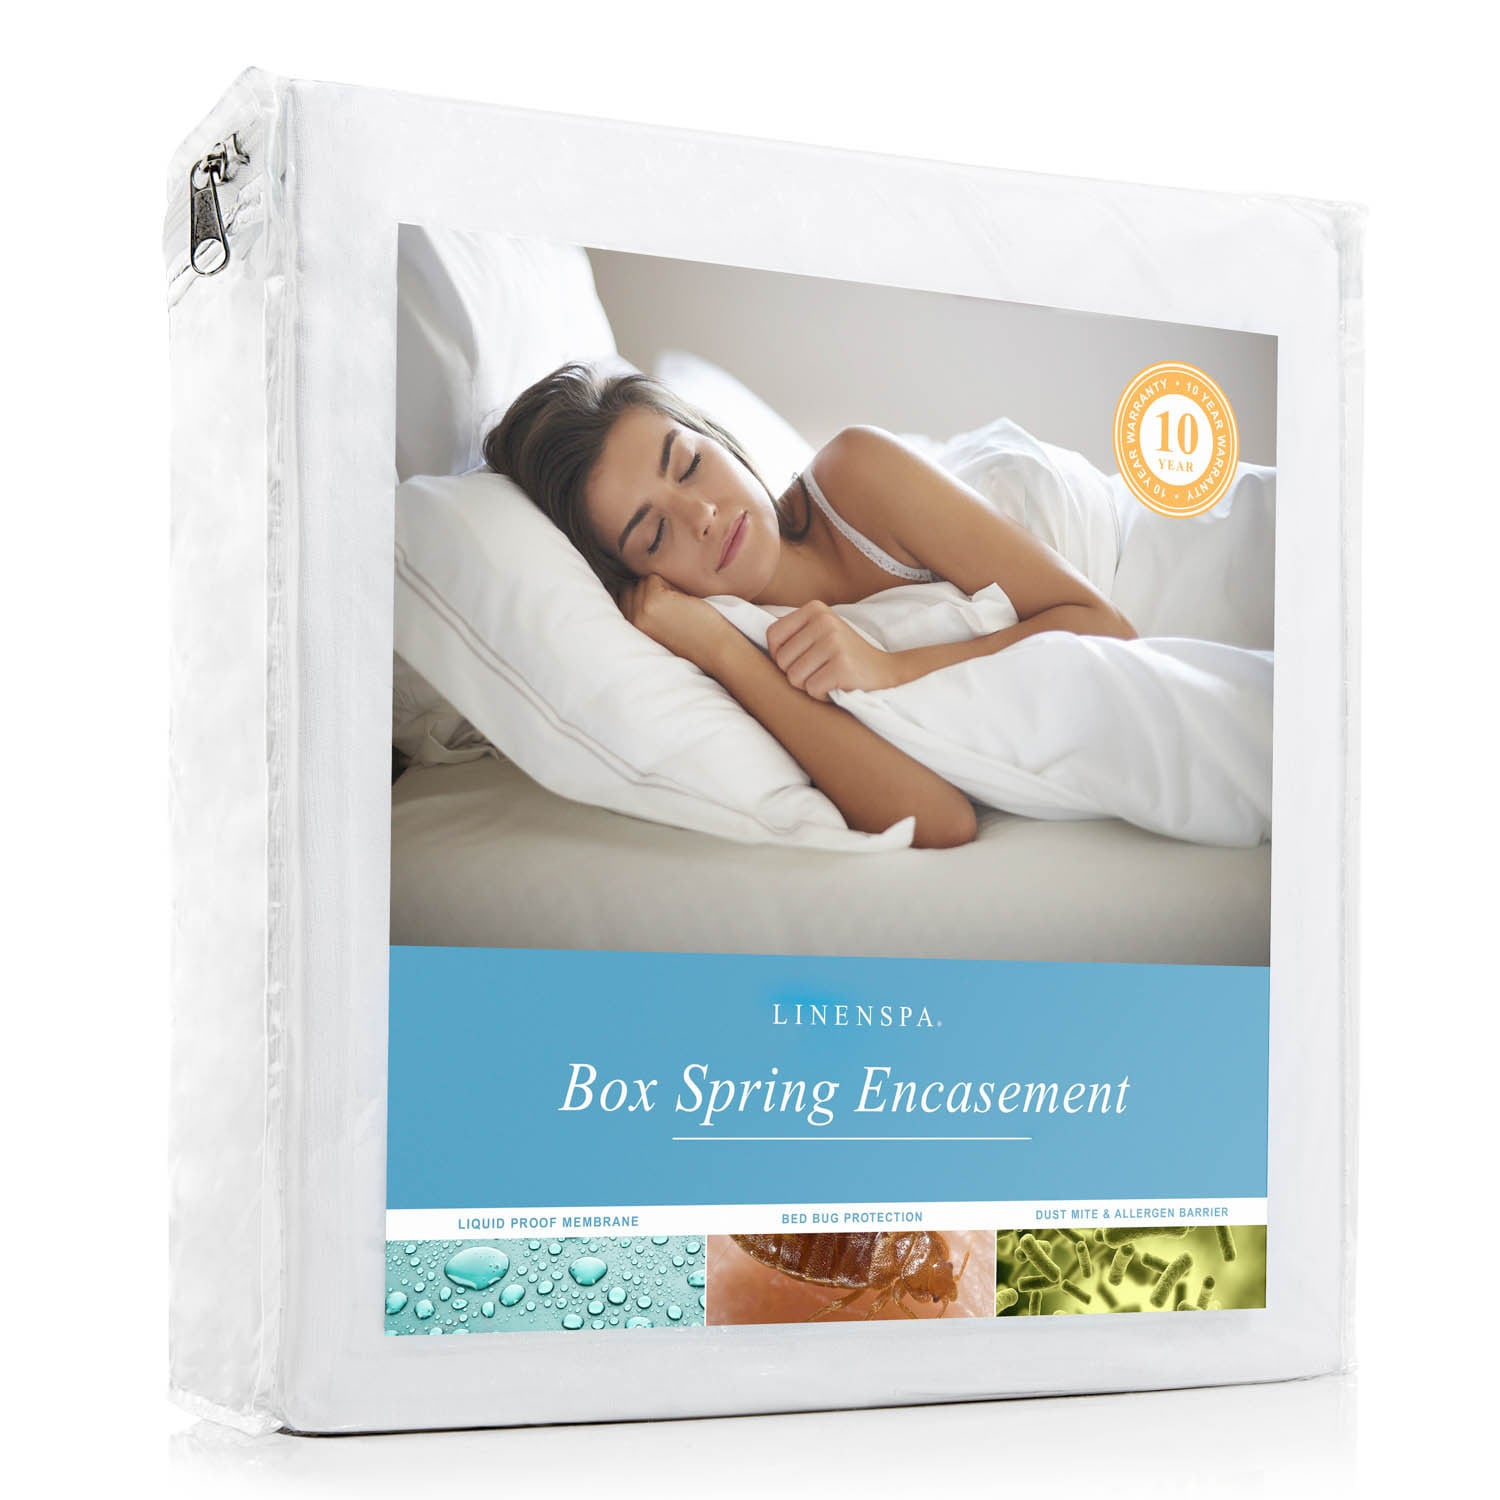 Bed Bug Protection Cover Linenspa Waterproof And Bed Bug Proof Box Spring Encasement Protector